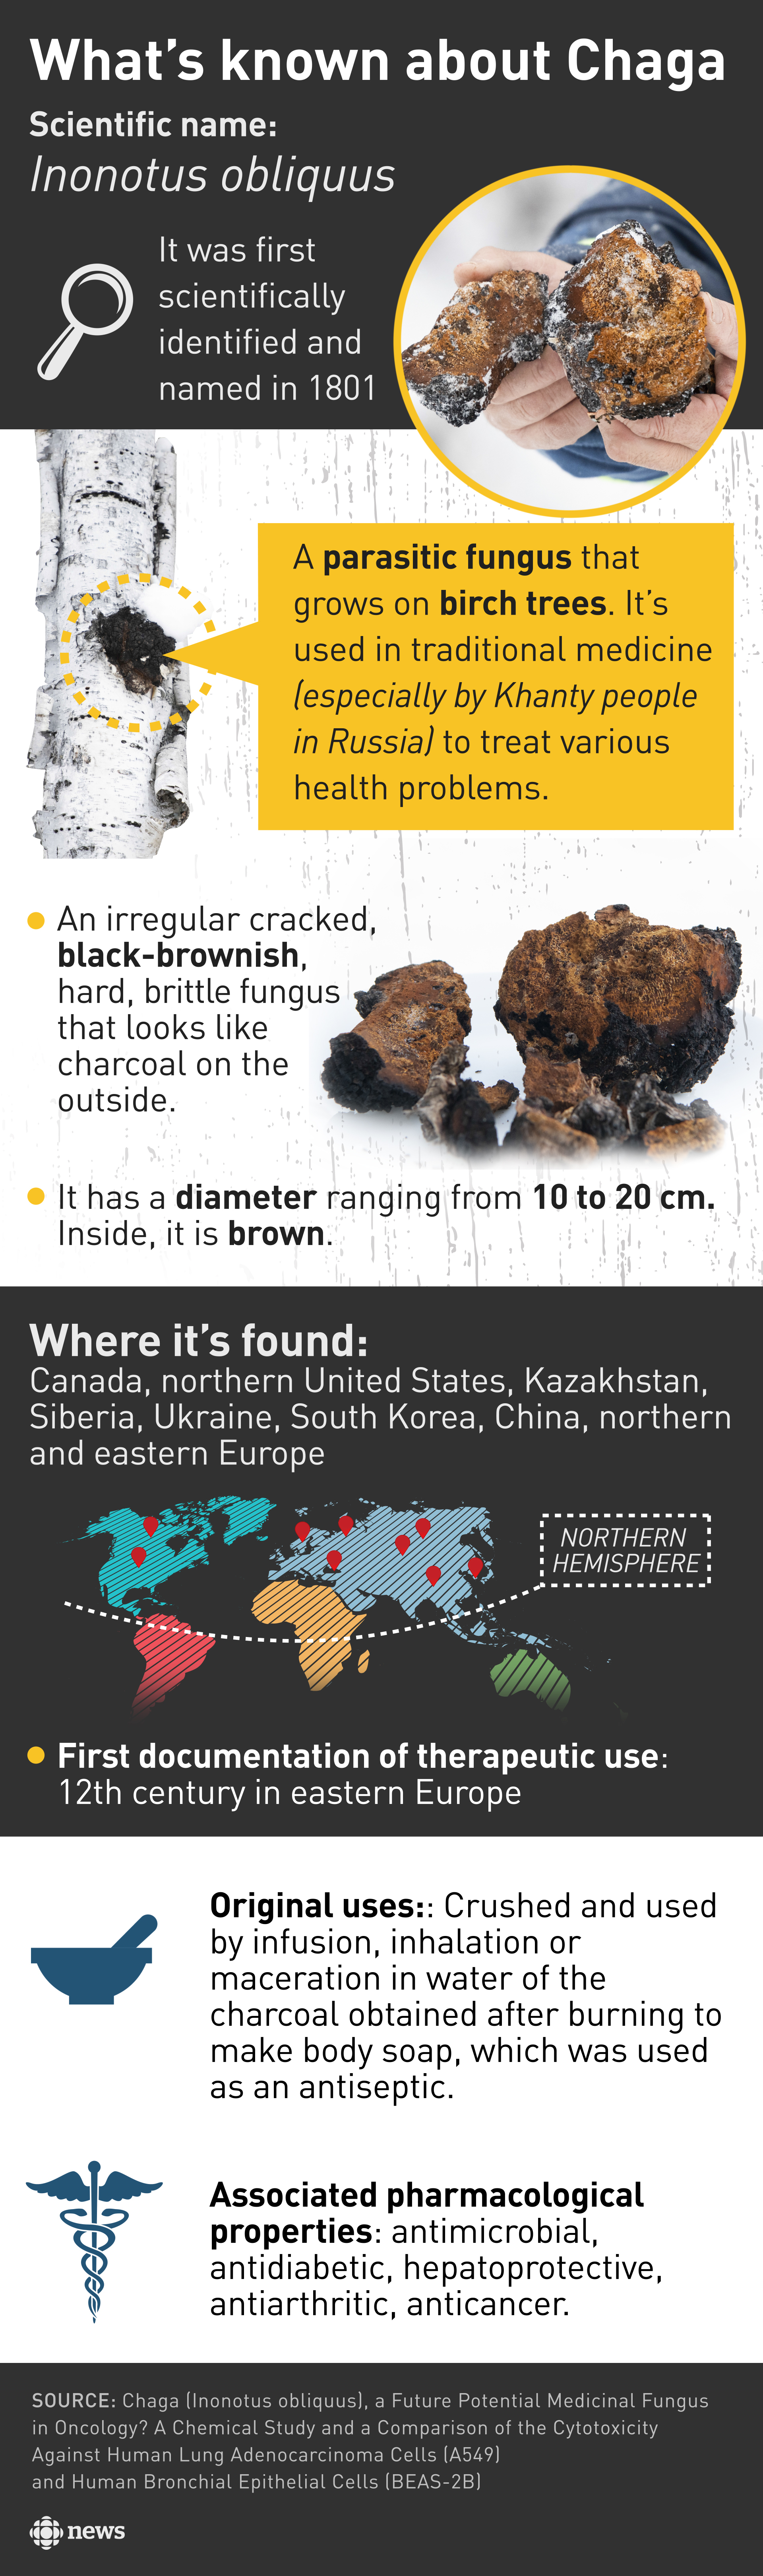 Chaga is a parasitic fungus that grows on birch trees. It has a diameter ranging from 10 to 20 cm. Inside, it is brown. It's used in traditional medicine (especially by Khanty people in Russia) to treat various health problems. It's found in Canada, northern United States, Kazakhstan, Siberia, Ukraine, South Korea, China, and northern and eastern Europe. The pharmacological properties historically associated with chaga are antimicrobial, antidiabetic, hepatoprotective, antiarthritic, anticancer. (CBC Graphics)